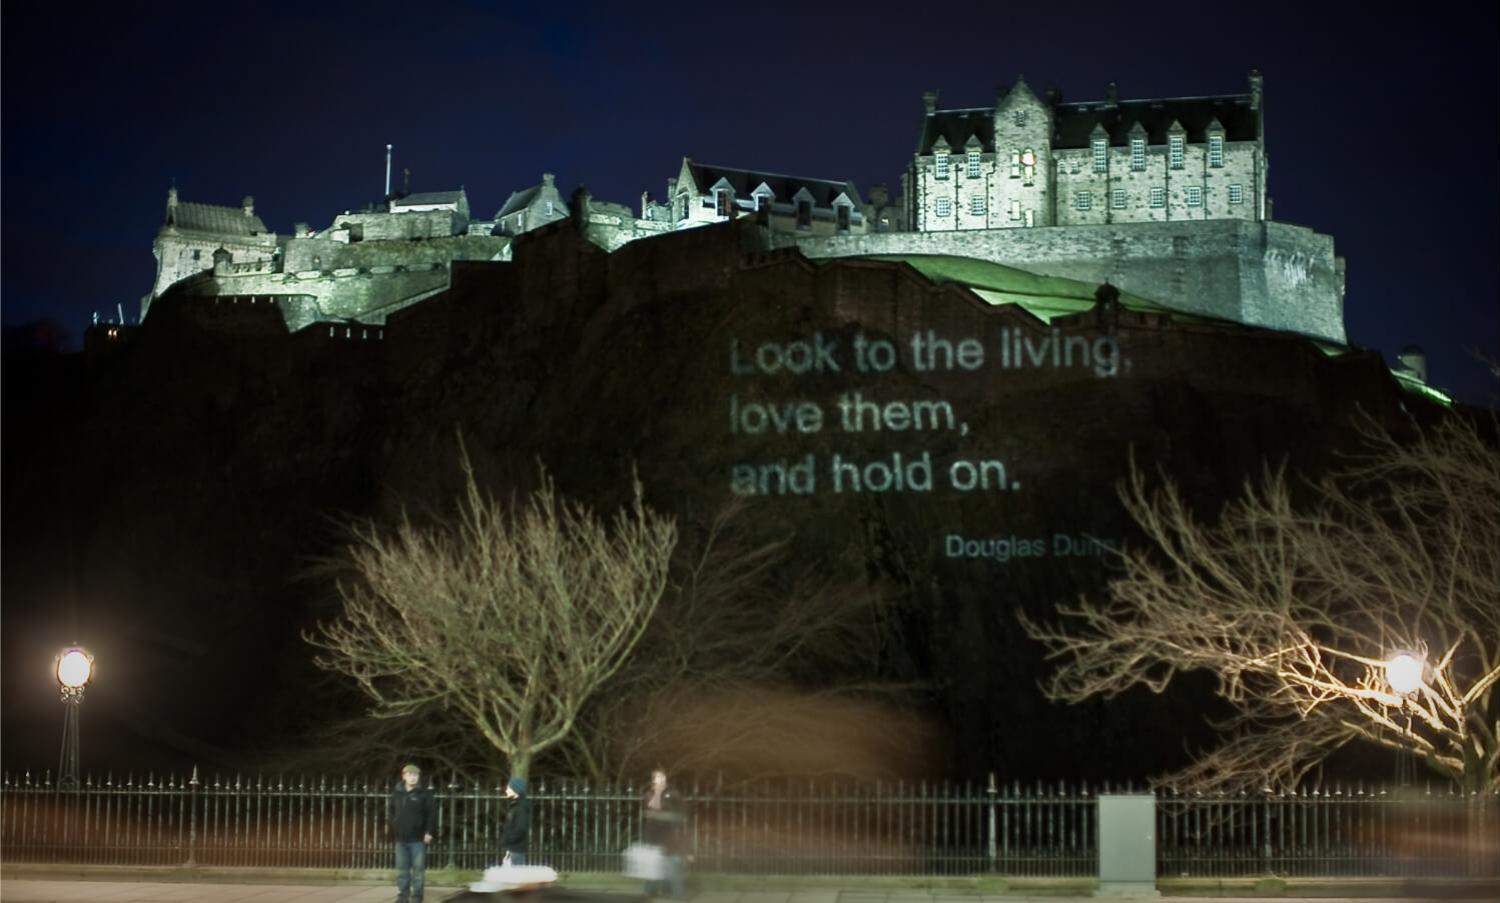 A Poetry Project on Edinburgh Castle - City of Literature. Photo by Chris Scott-